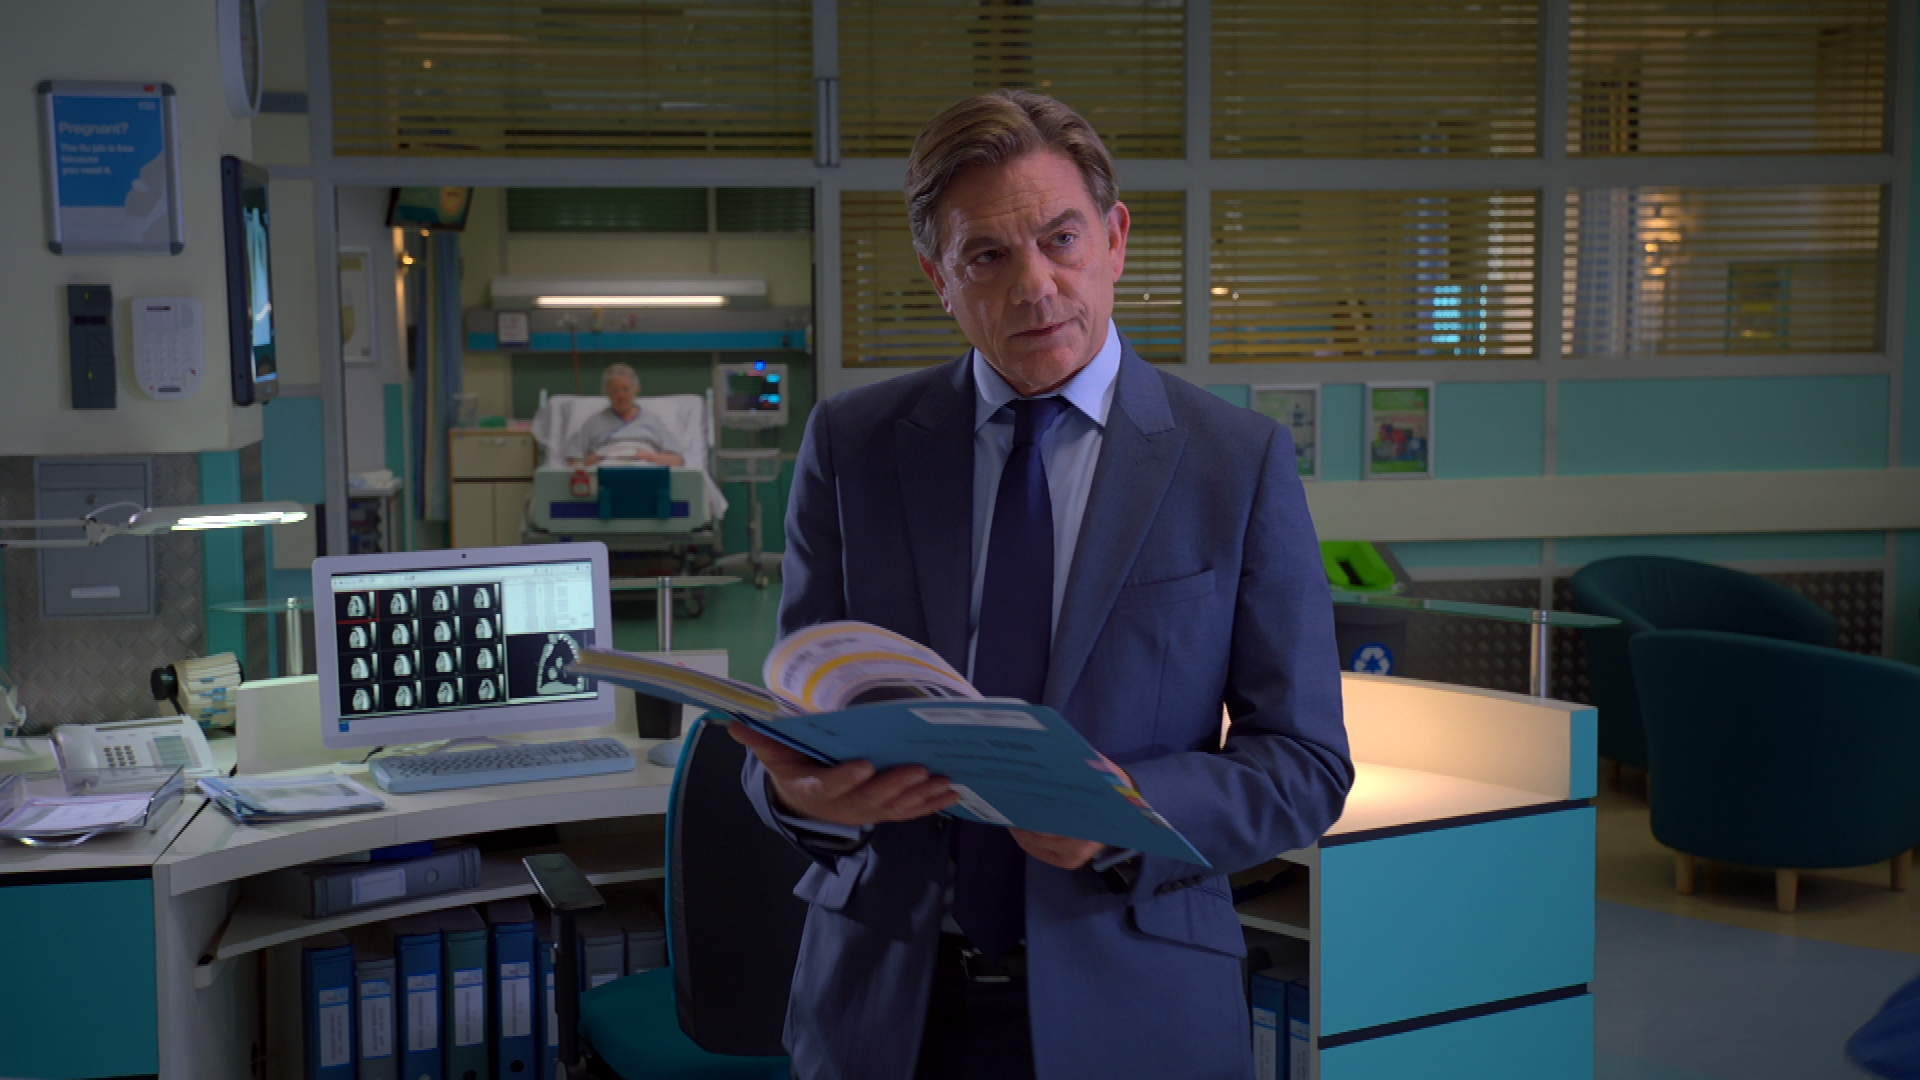 Holby City review with spoilers: Selfie and Mo to the rescue!